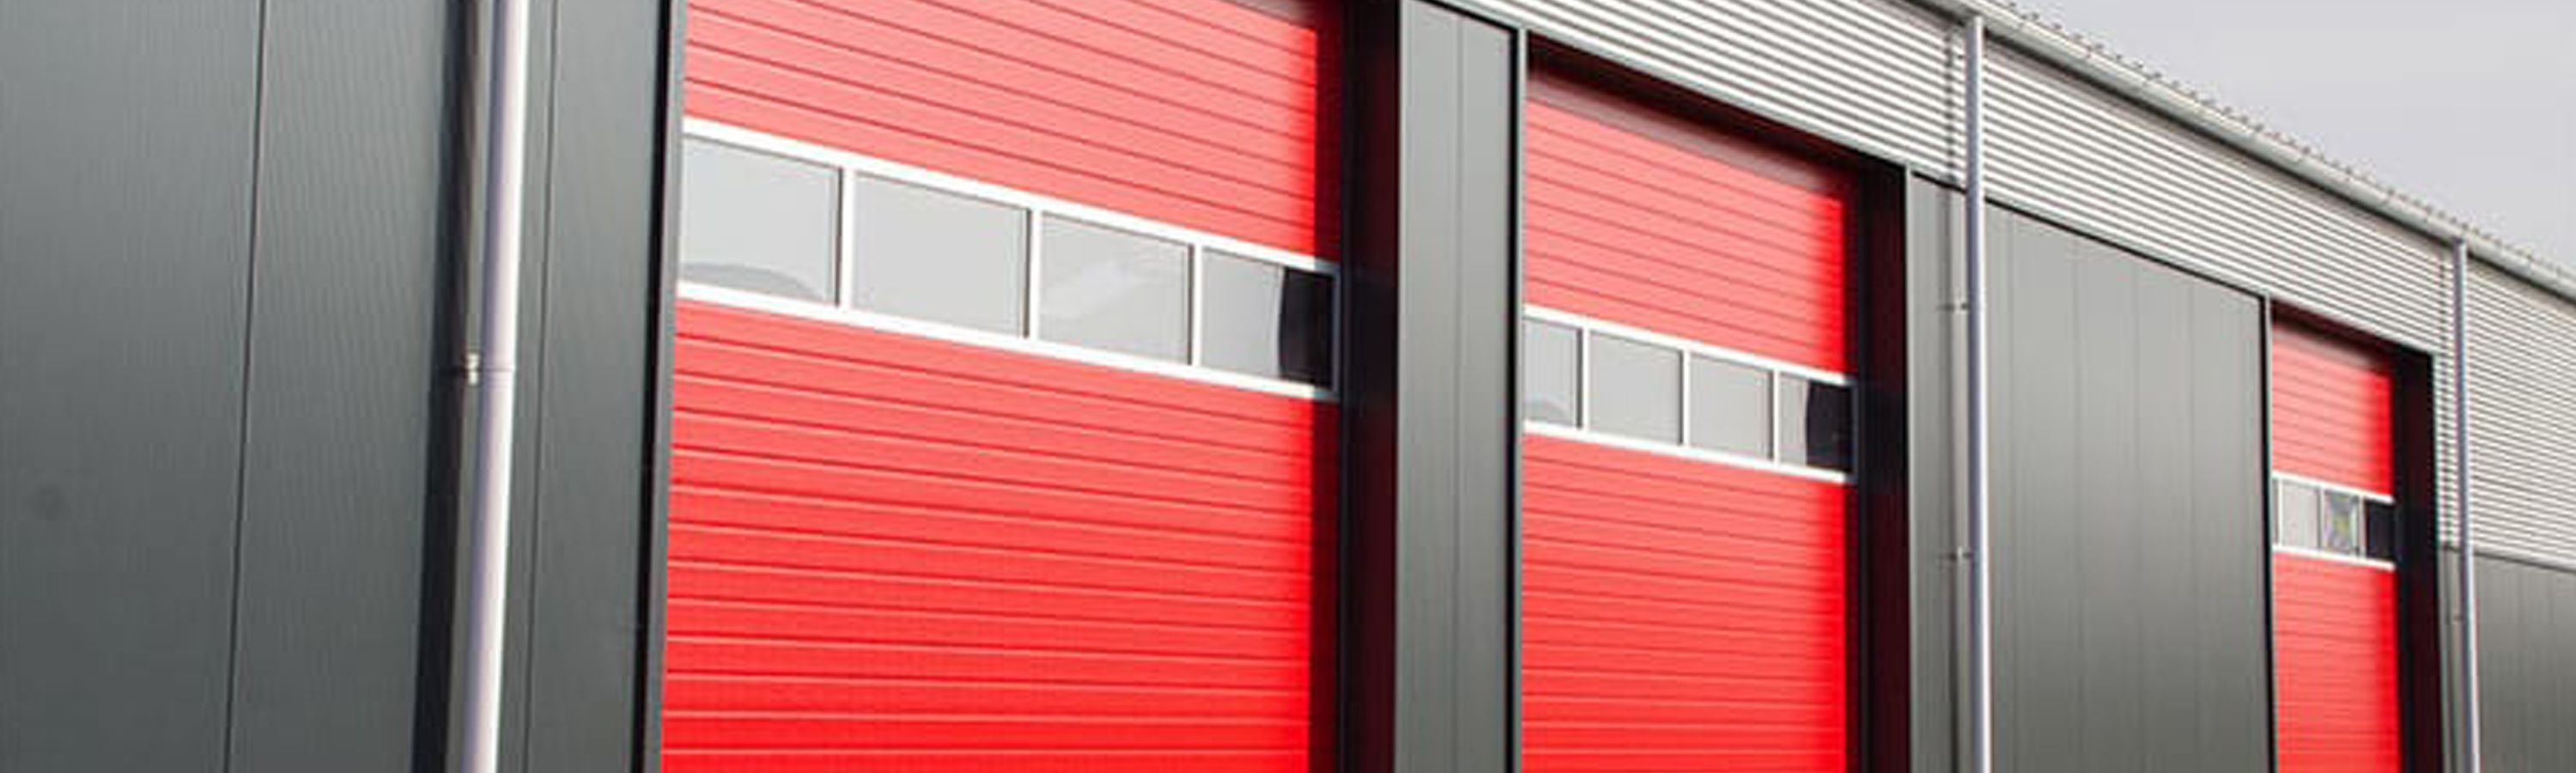 full mesa size door repair phoenix doors opener scottsdale chandler garage of az installation